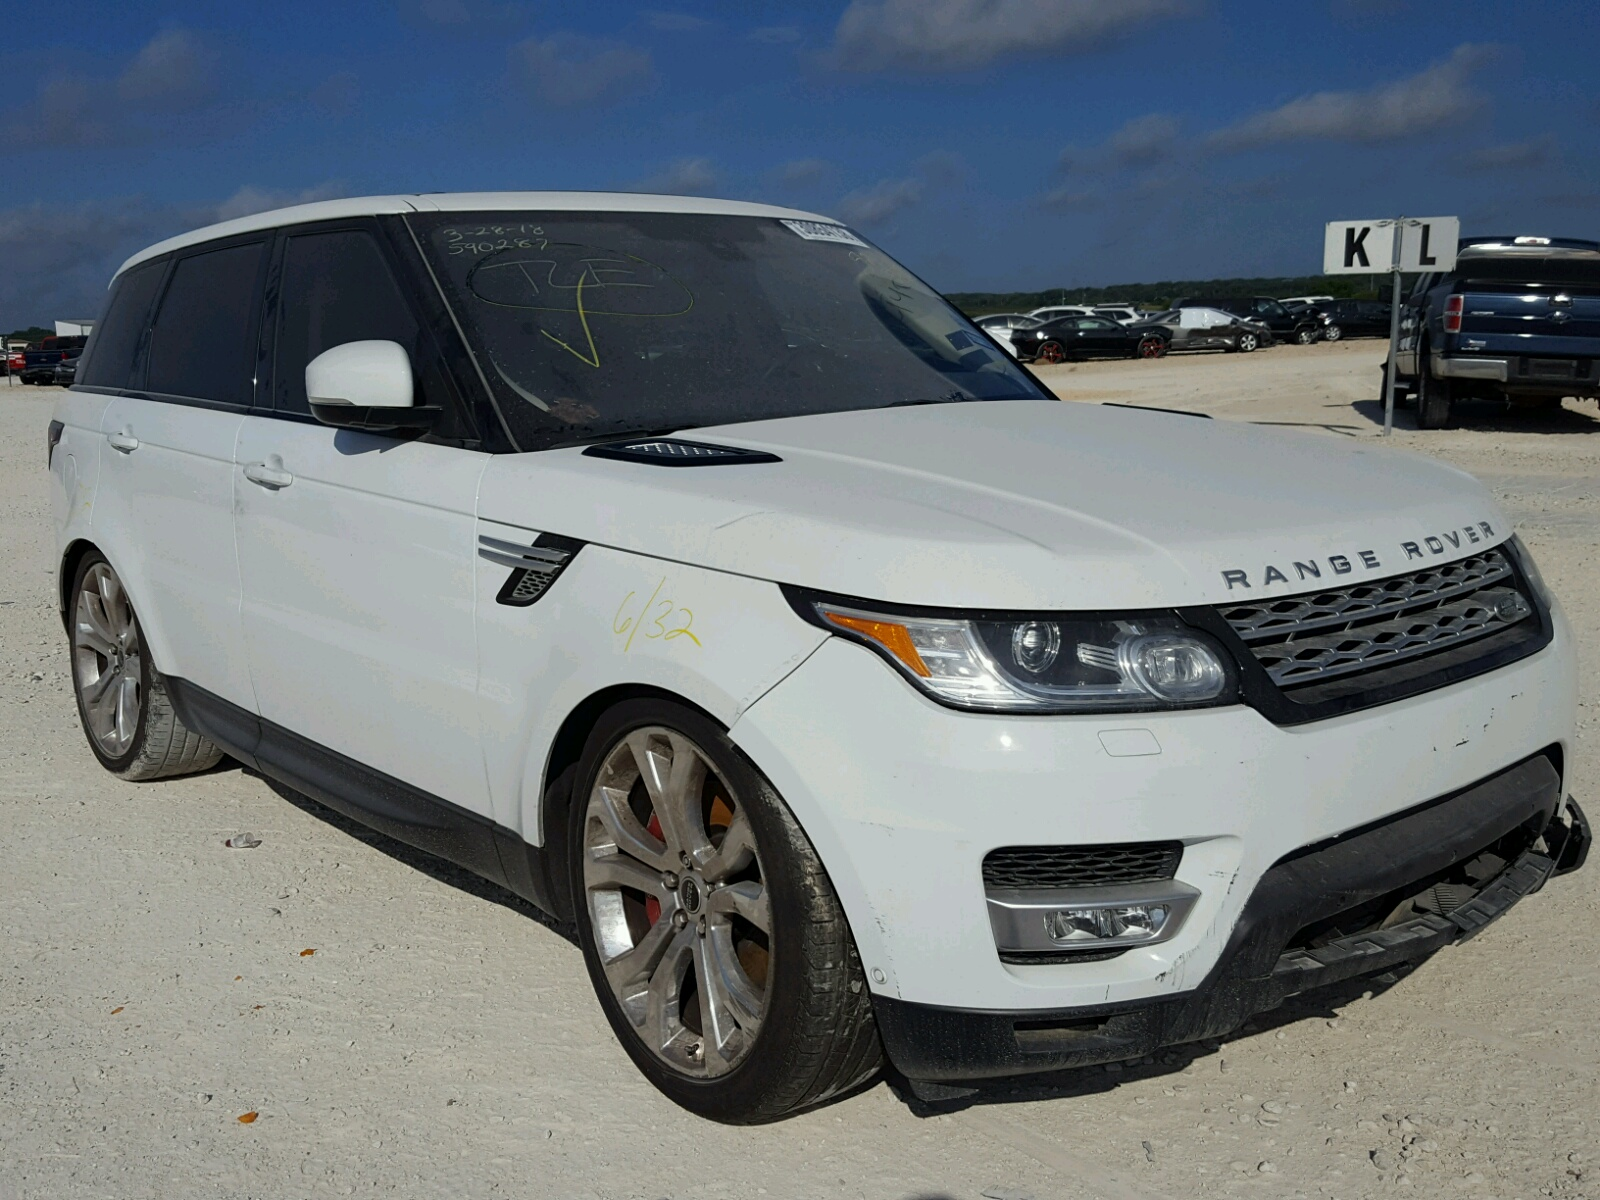 2016 Range Rover Sport For Sale In New Braunfels >> 2016 Land Rover Range Rover For Sale At Copart New Braunfels Tx Lot